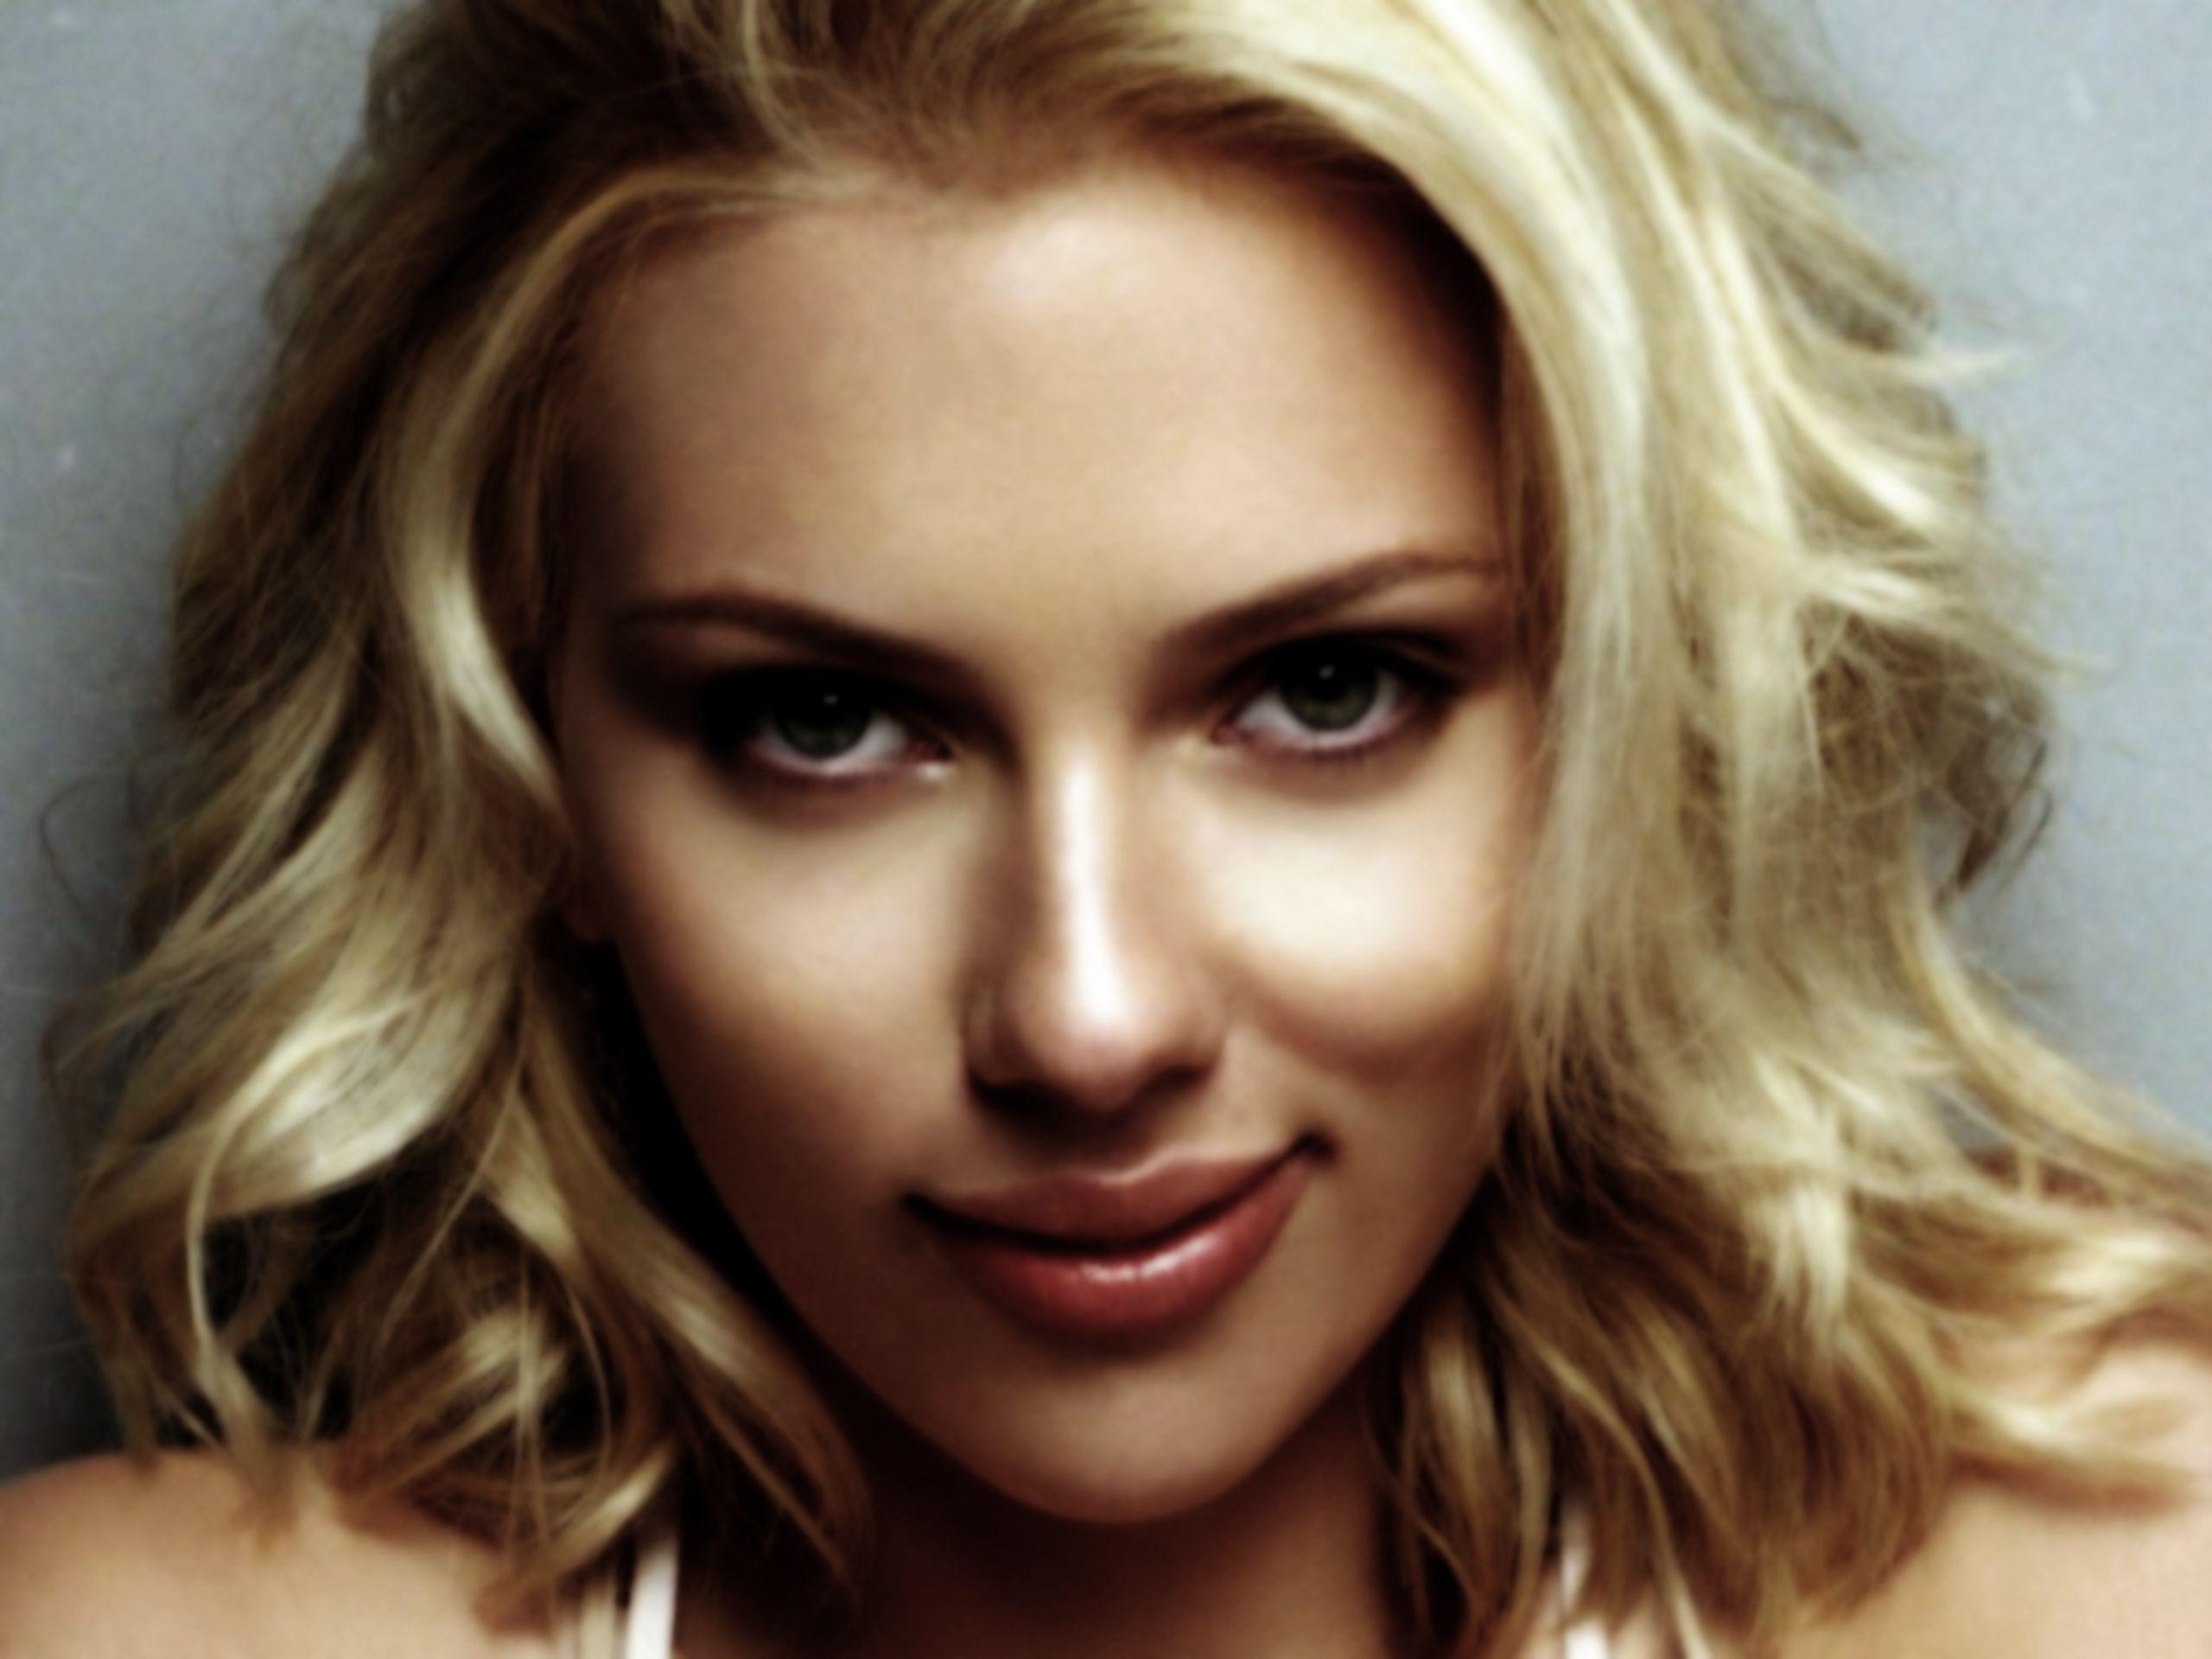 Scarlett Johansson HD 17 HD Images Wallpapers | HD Image Wallpaper